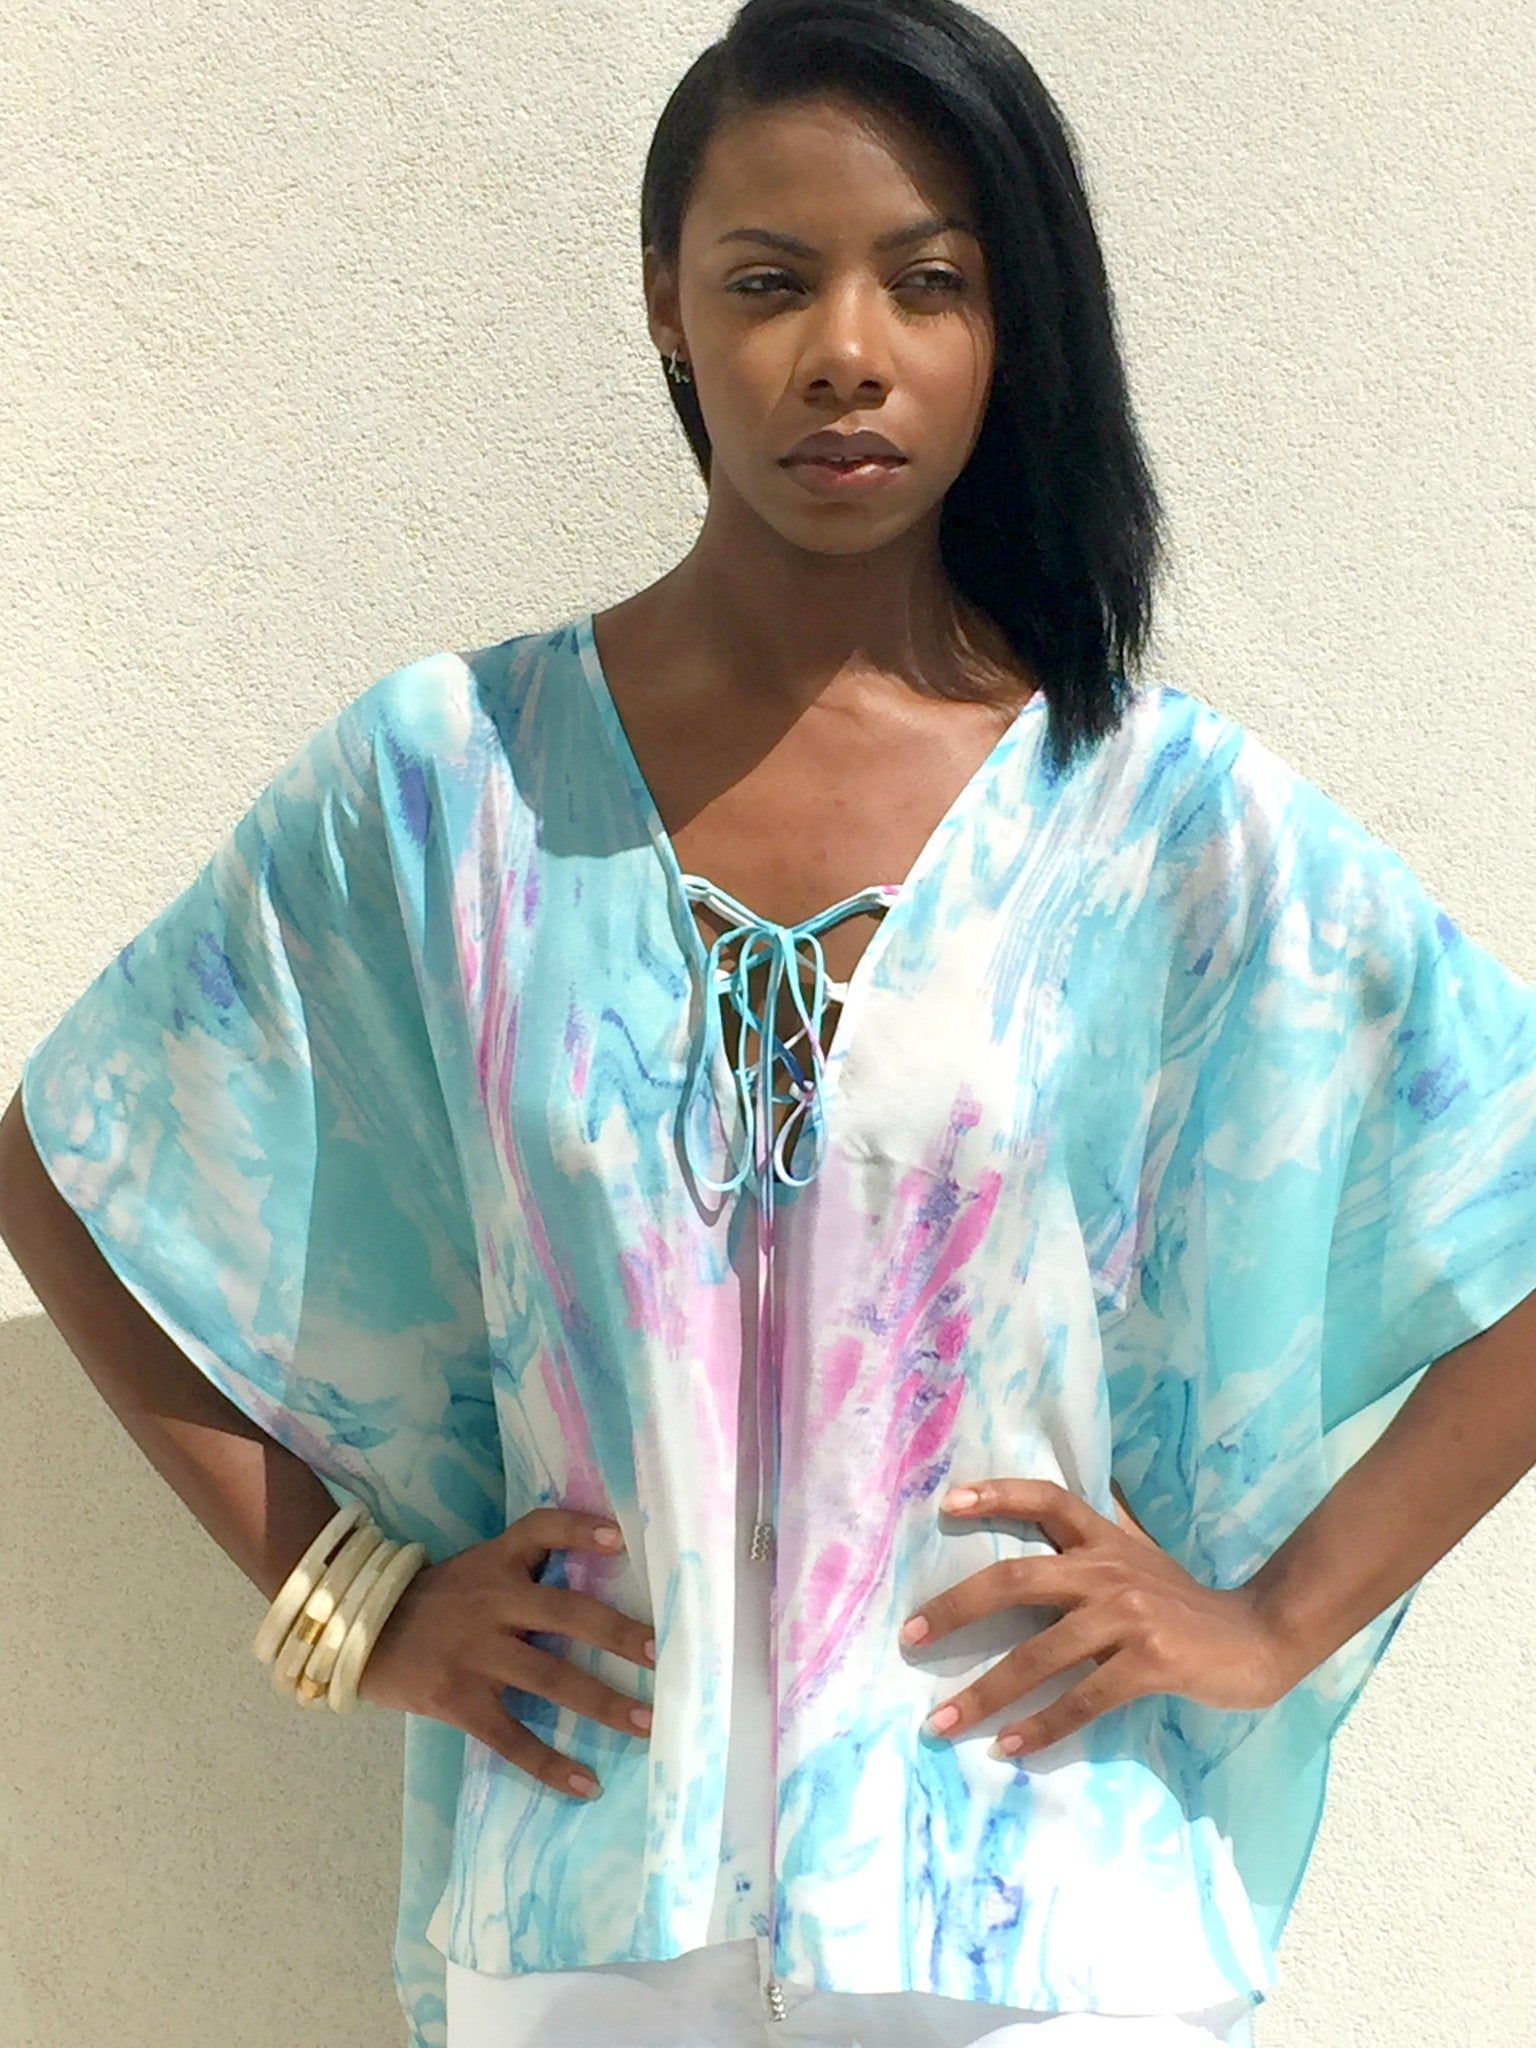 Cayman Wave Entwined Kaftan by Isy B. Design, silk Kaftan in sea colors, plunging neckline with intertwined laces